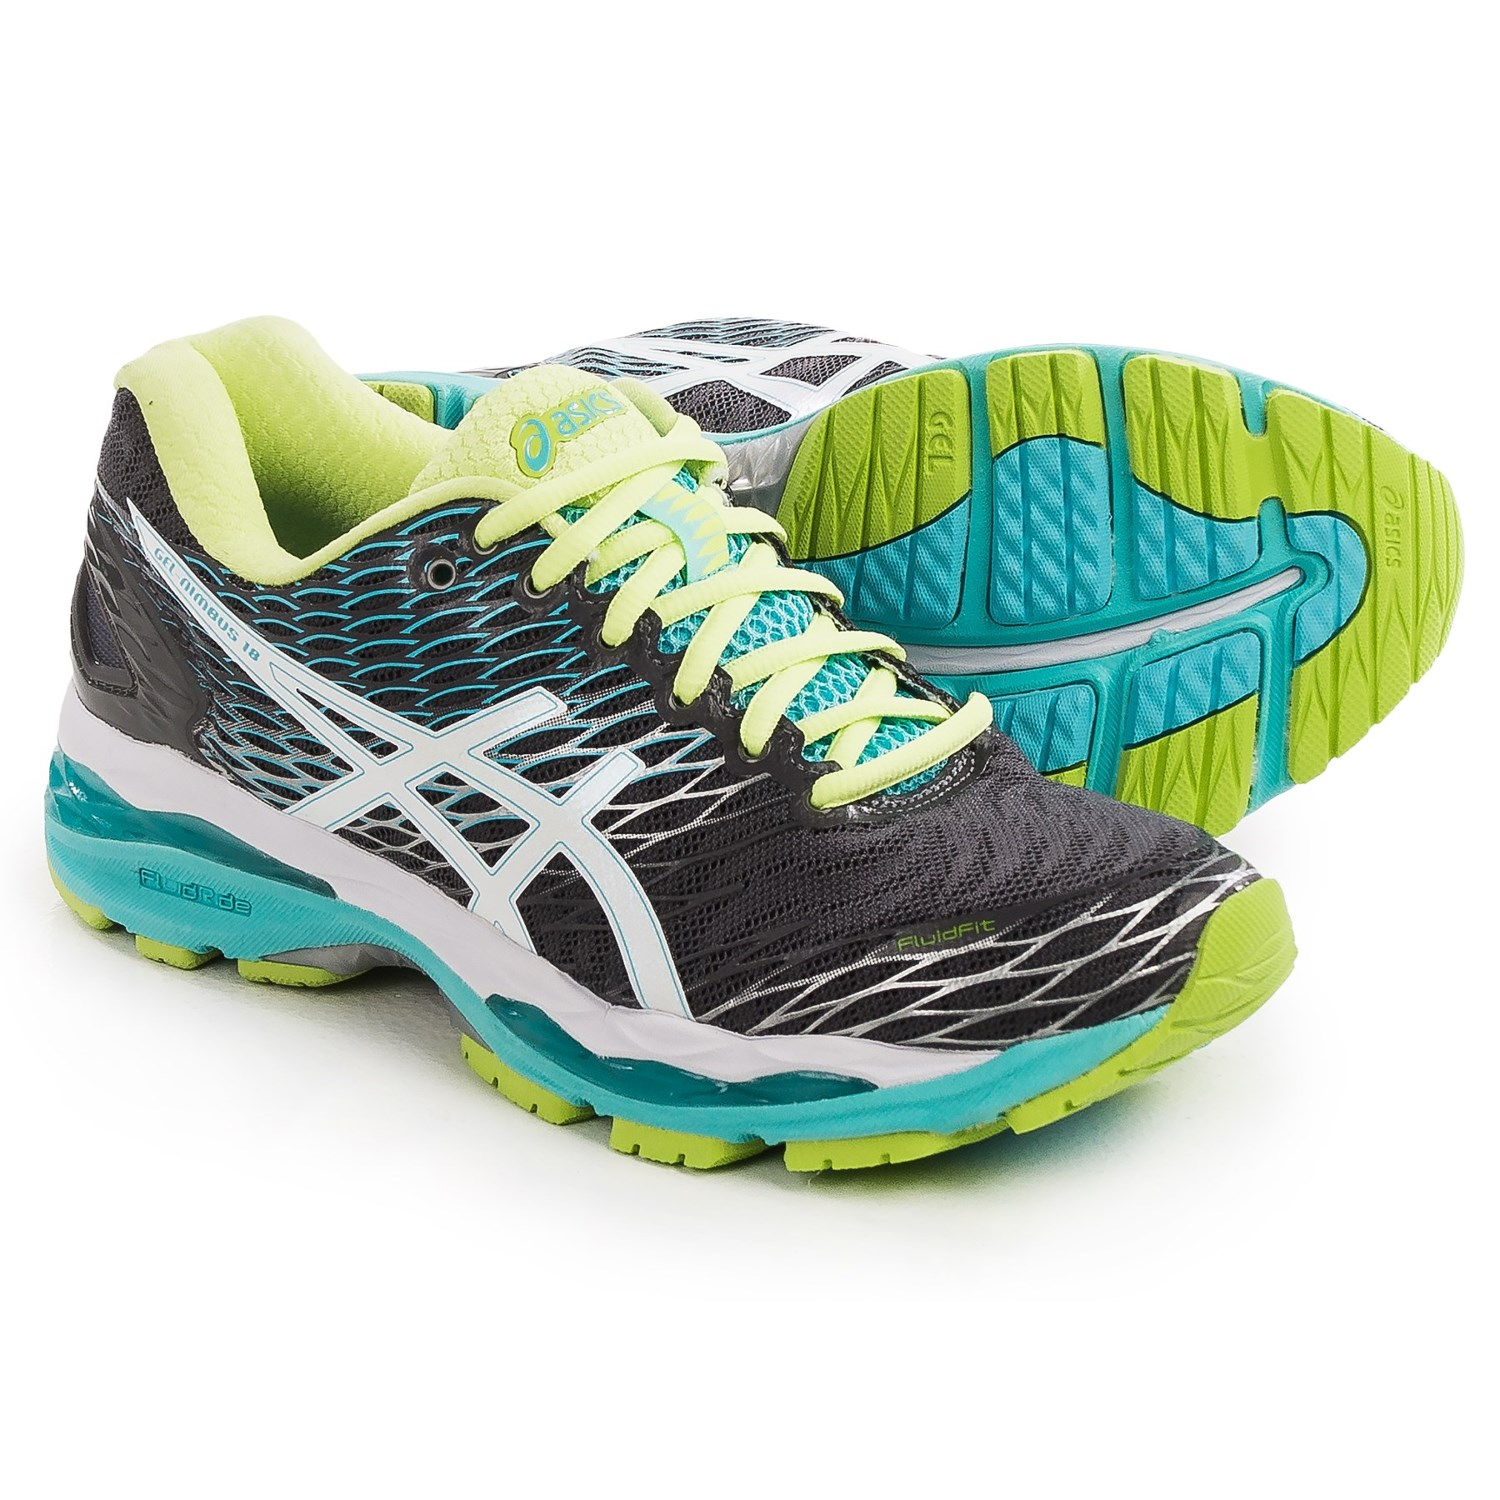 asics gel nimbus 18 running shoes for women save 40. Black Bedroom Furniture Sets. Home Design Ideas